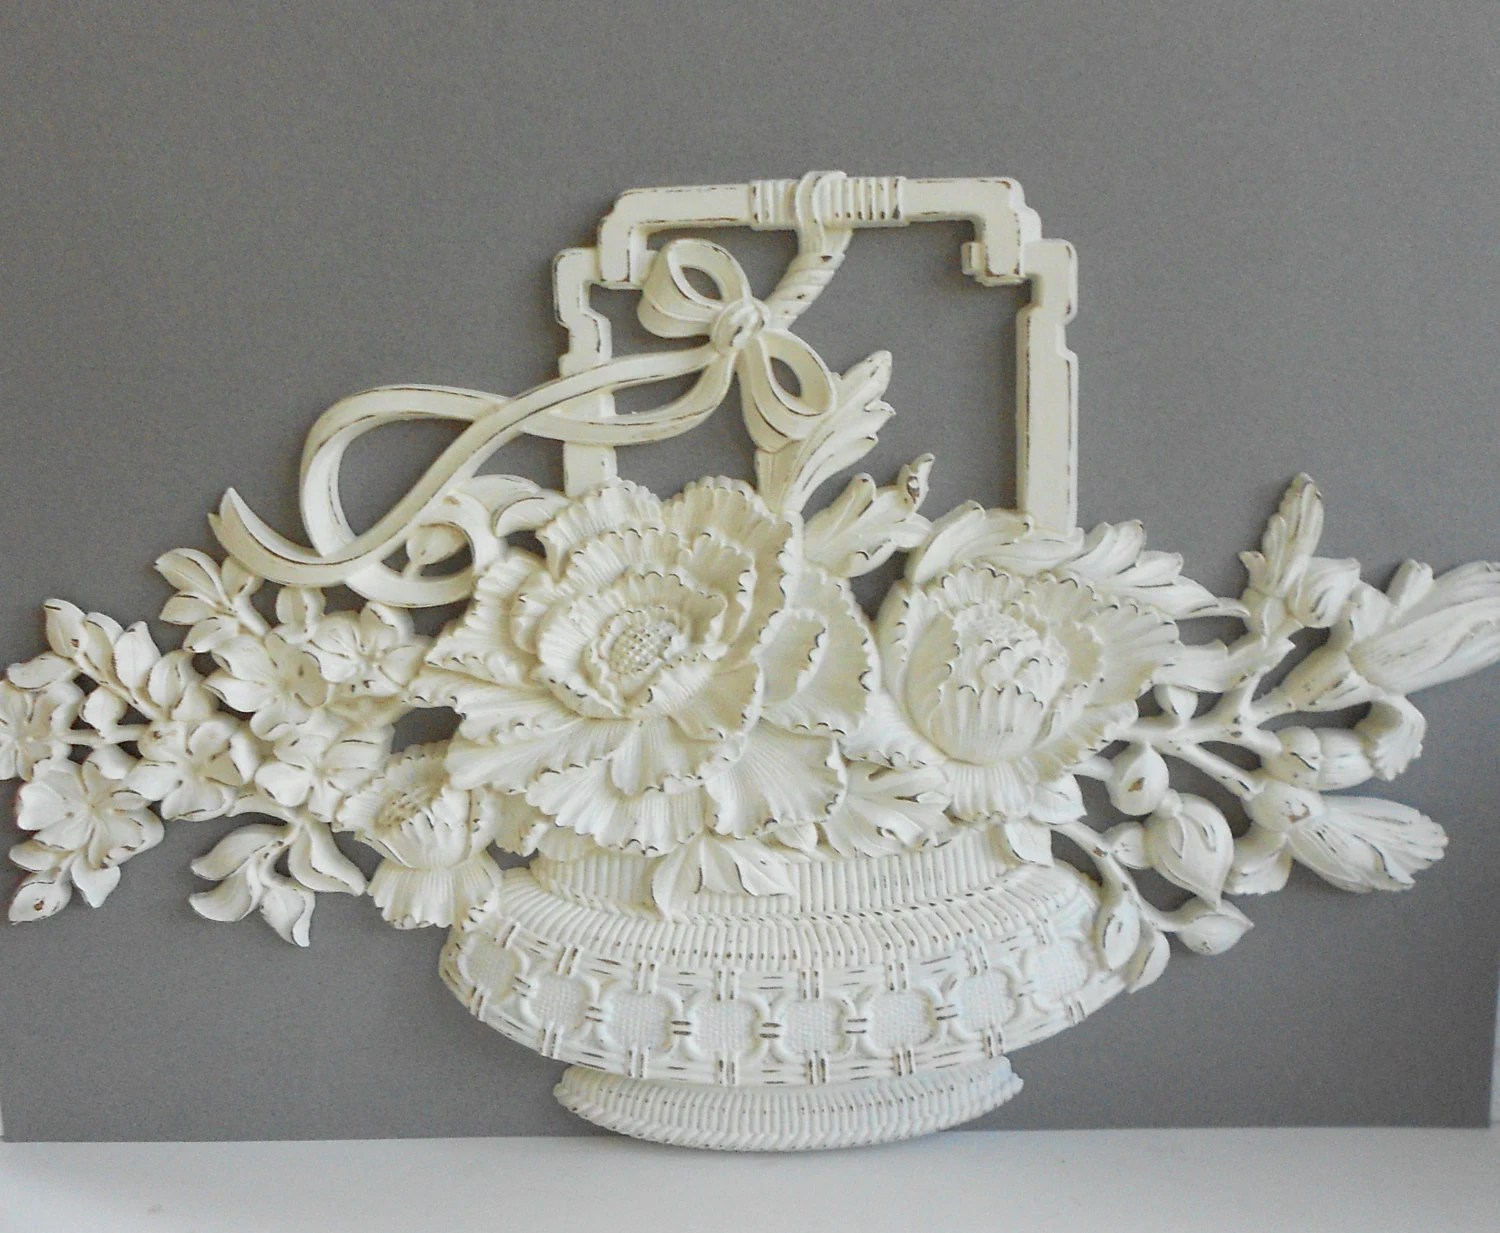 Flower Basket Large Wall Hanging Vintage 1980 by MollyMcShabby on Decorative Wall Sconces For Flowers Hanging Baskets Delivery id=25006